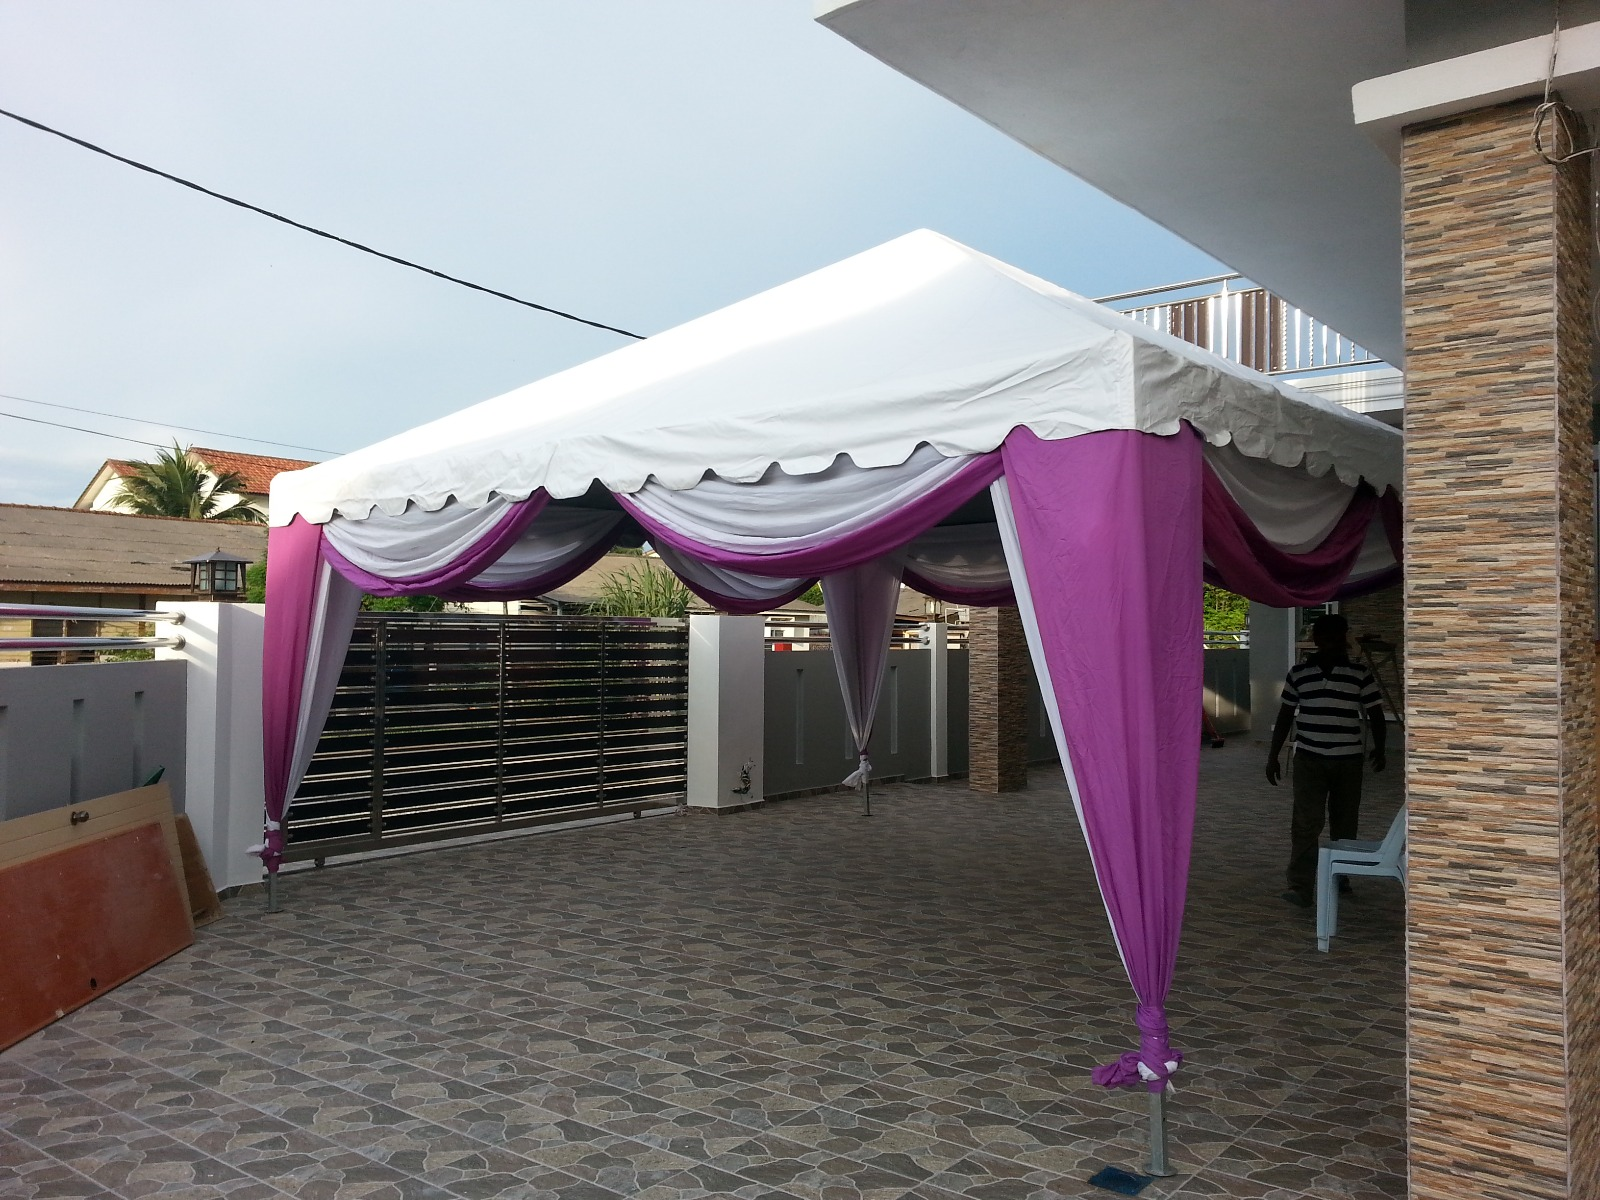 Canopy Rental Services – RJ